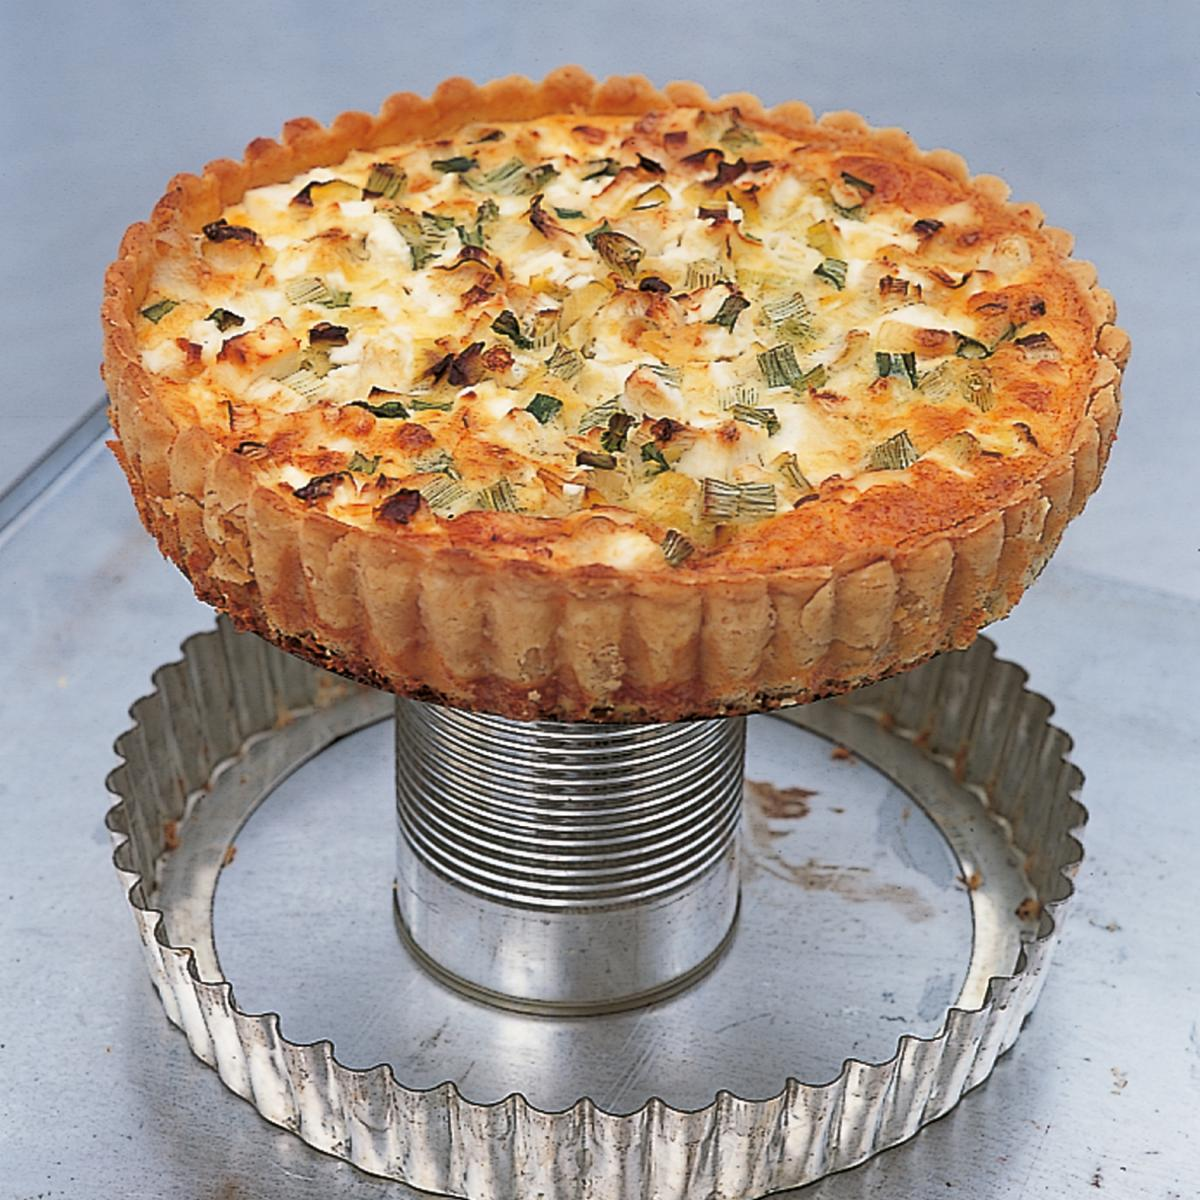 A picture of Delia's Smoked Fish Tart with a Parmesan Crust recipe